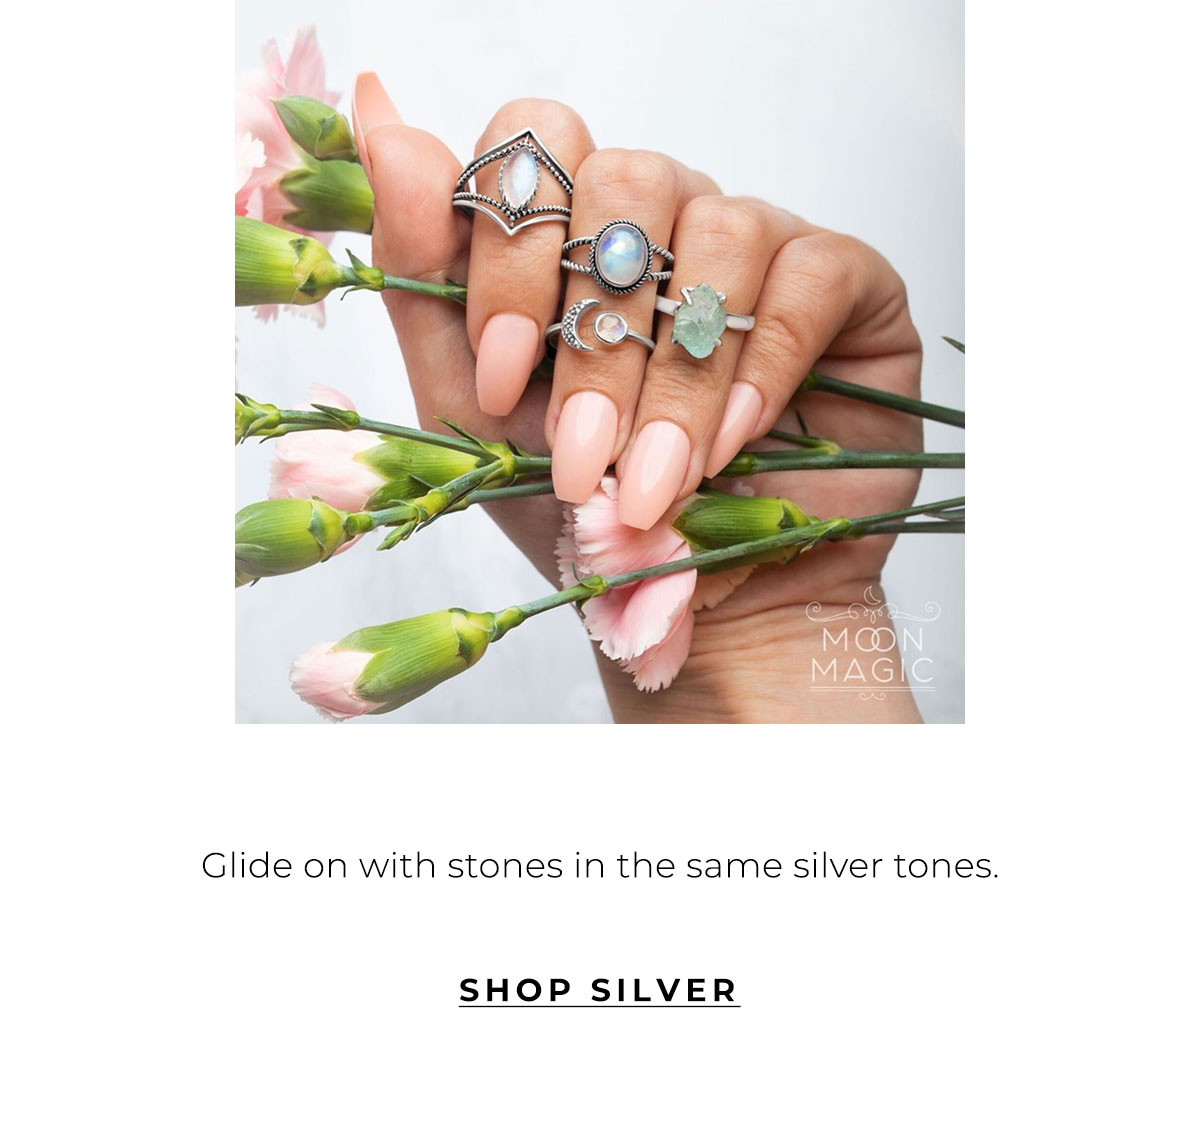 Glide on with stones in the same silver tones. | SHOP SILVER